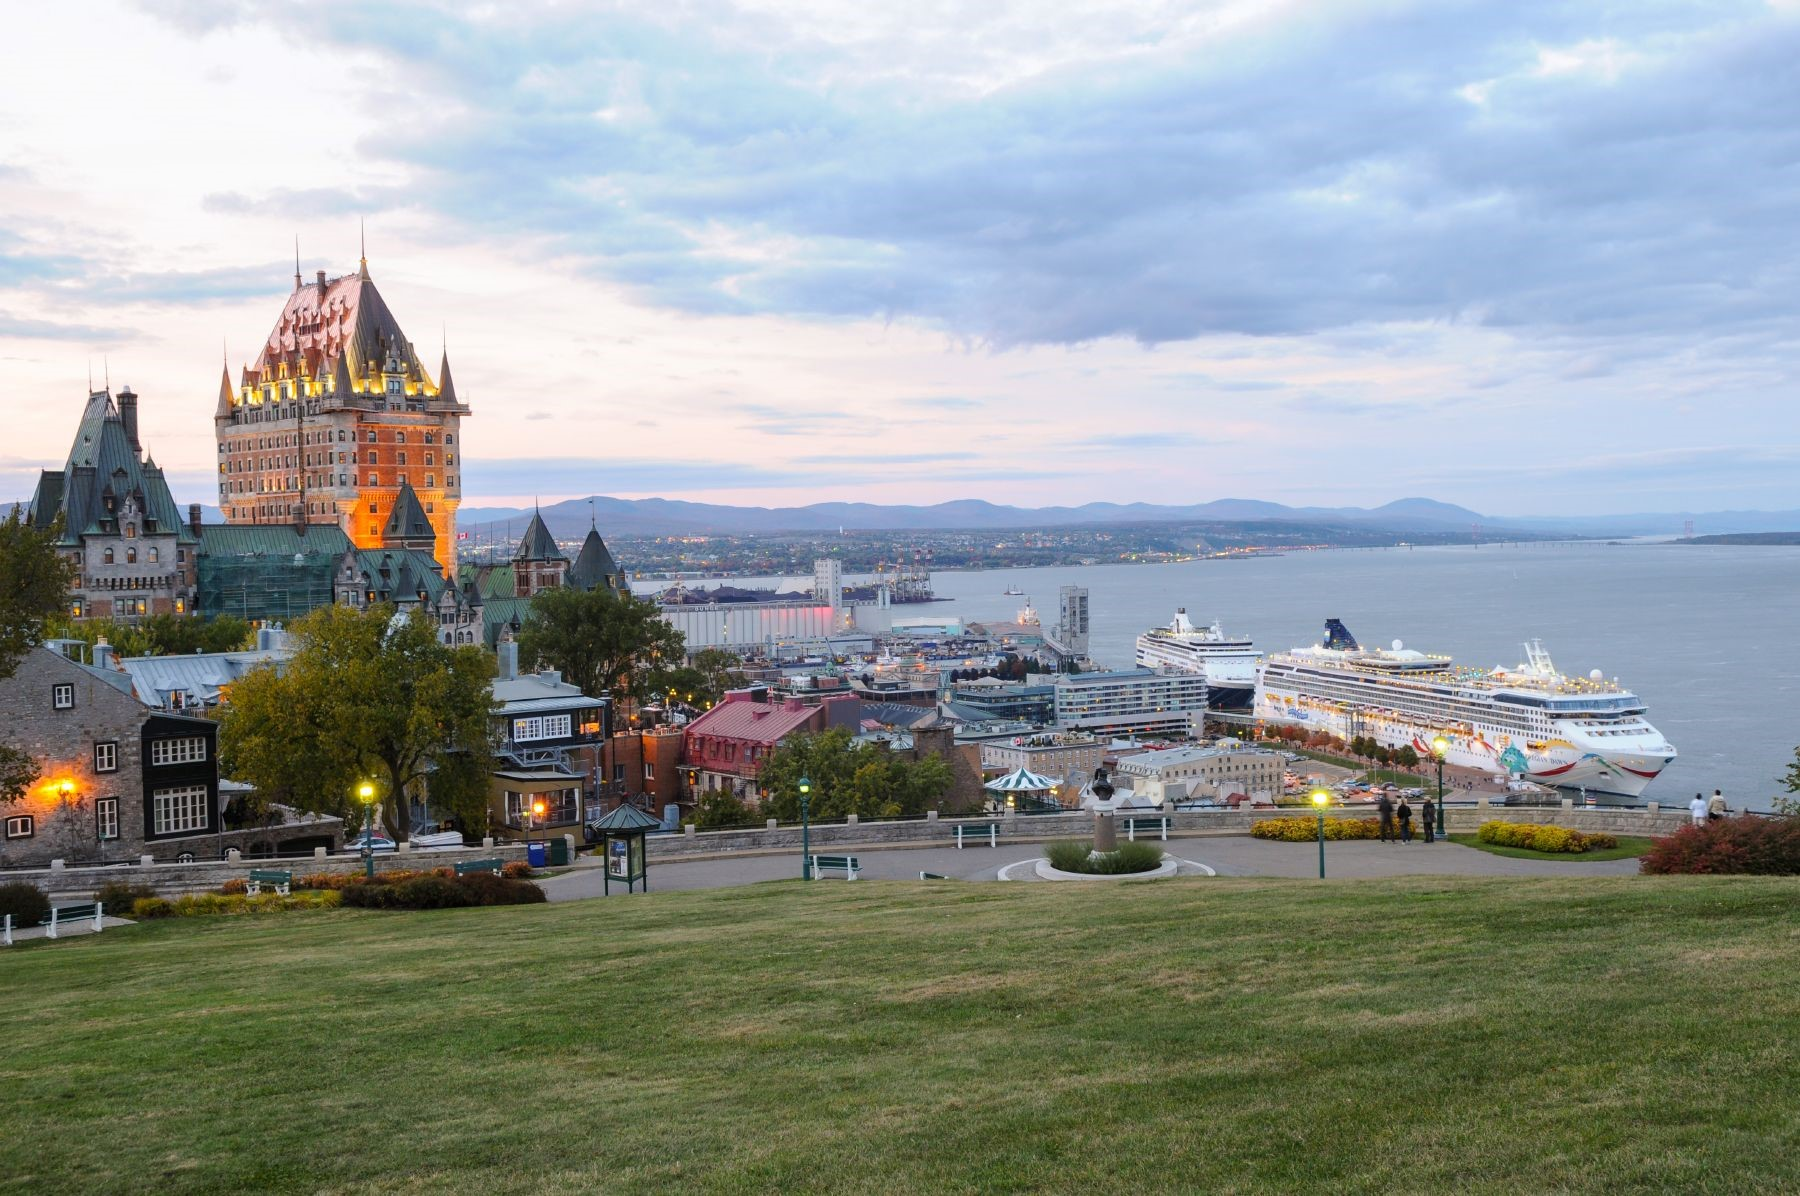 Chateau Frontenac, Photo: Ville de Quebec, 2012, Chantel Gagnon